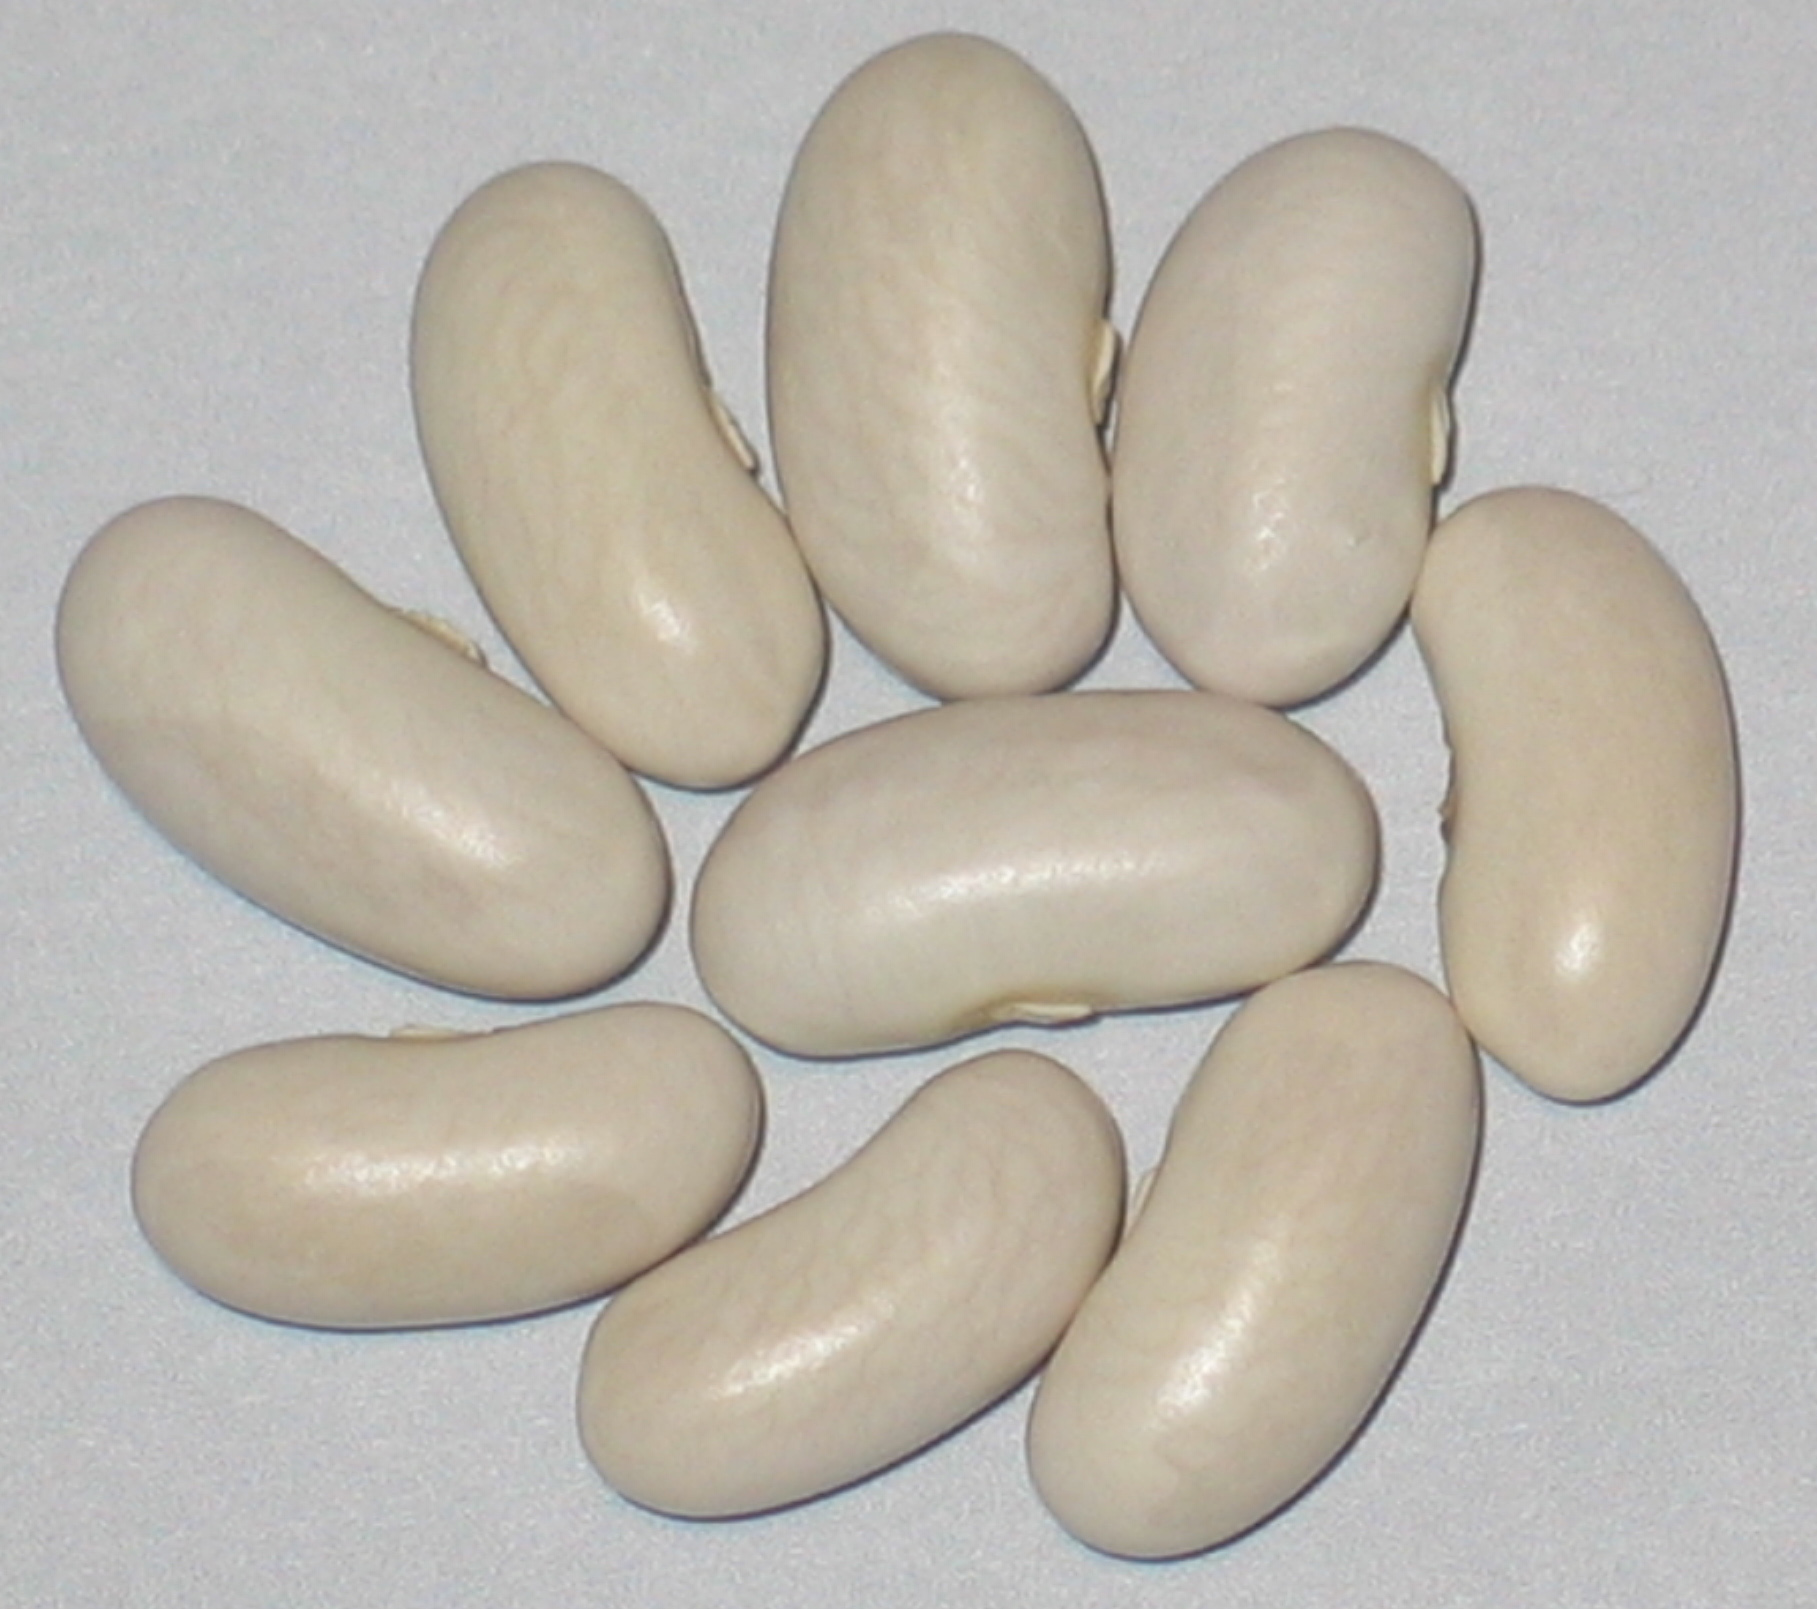 image of Cannellini beans